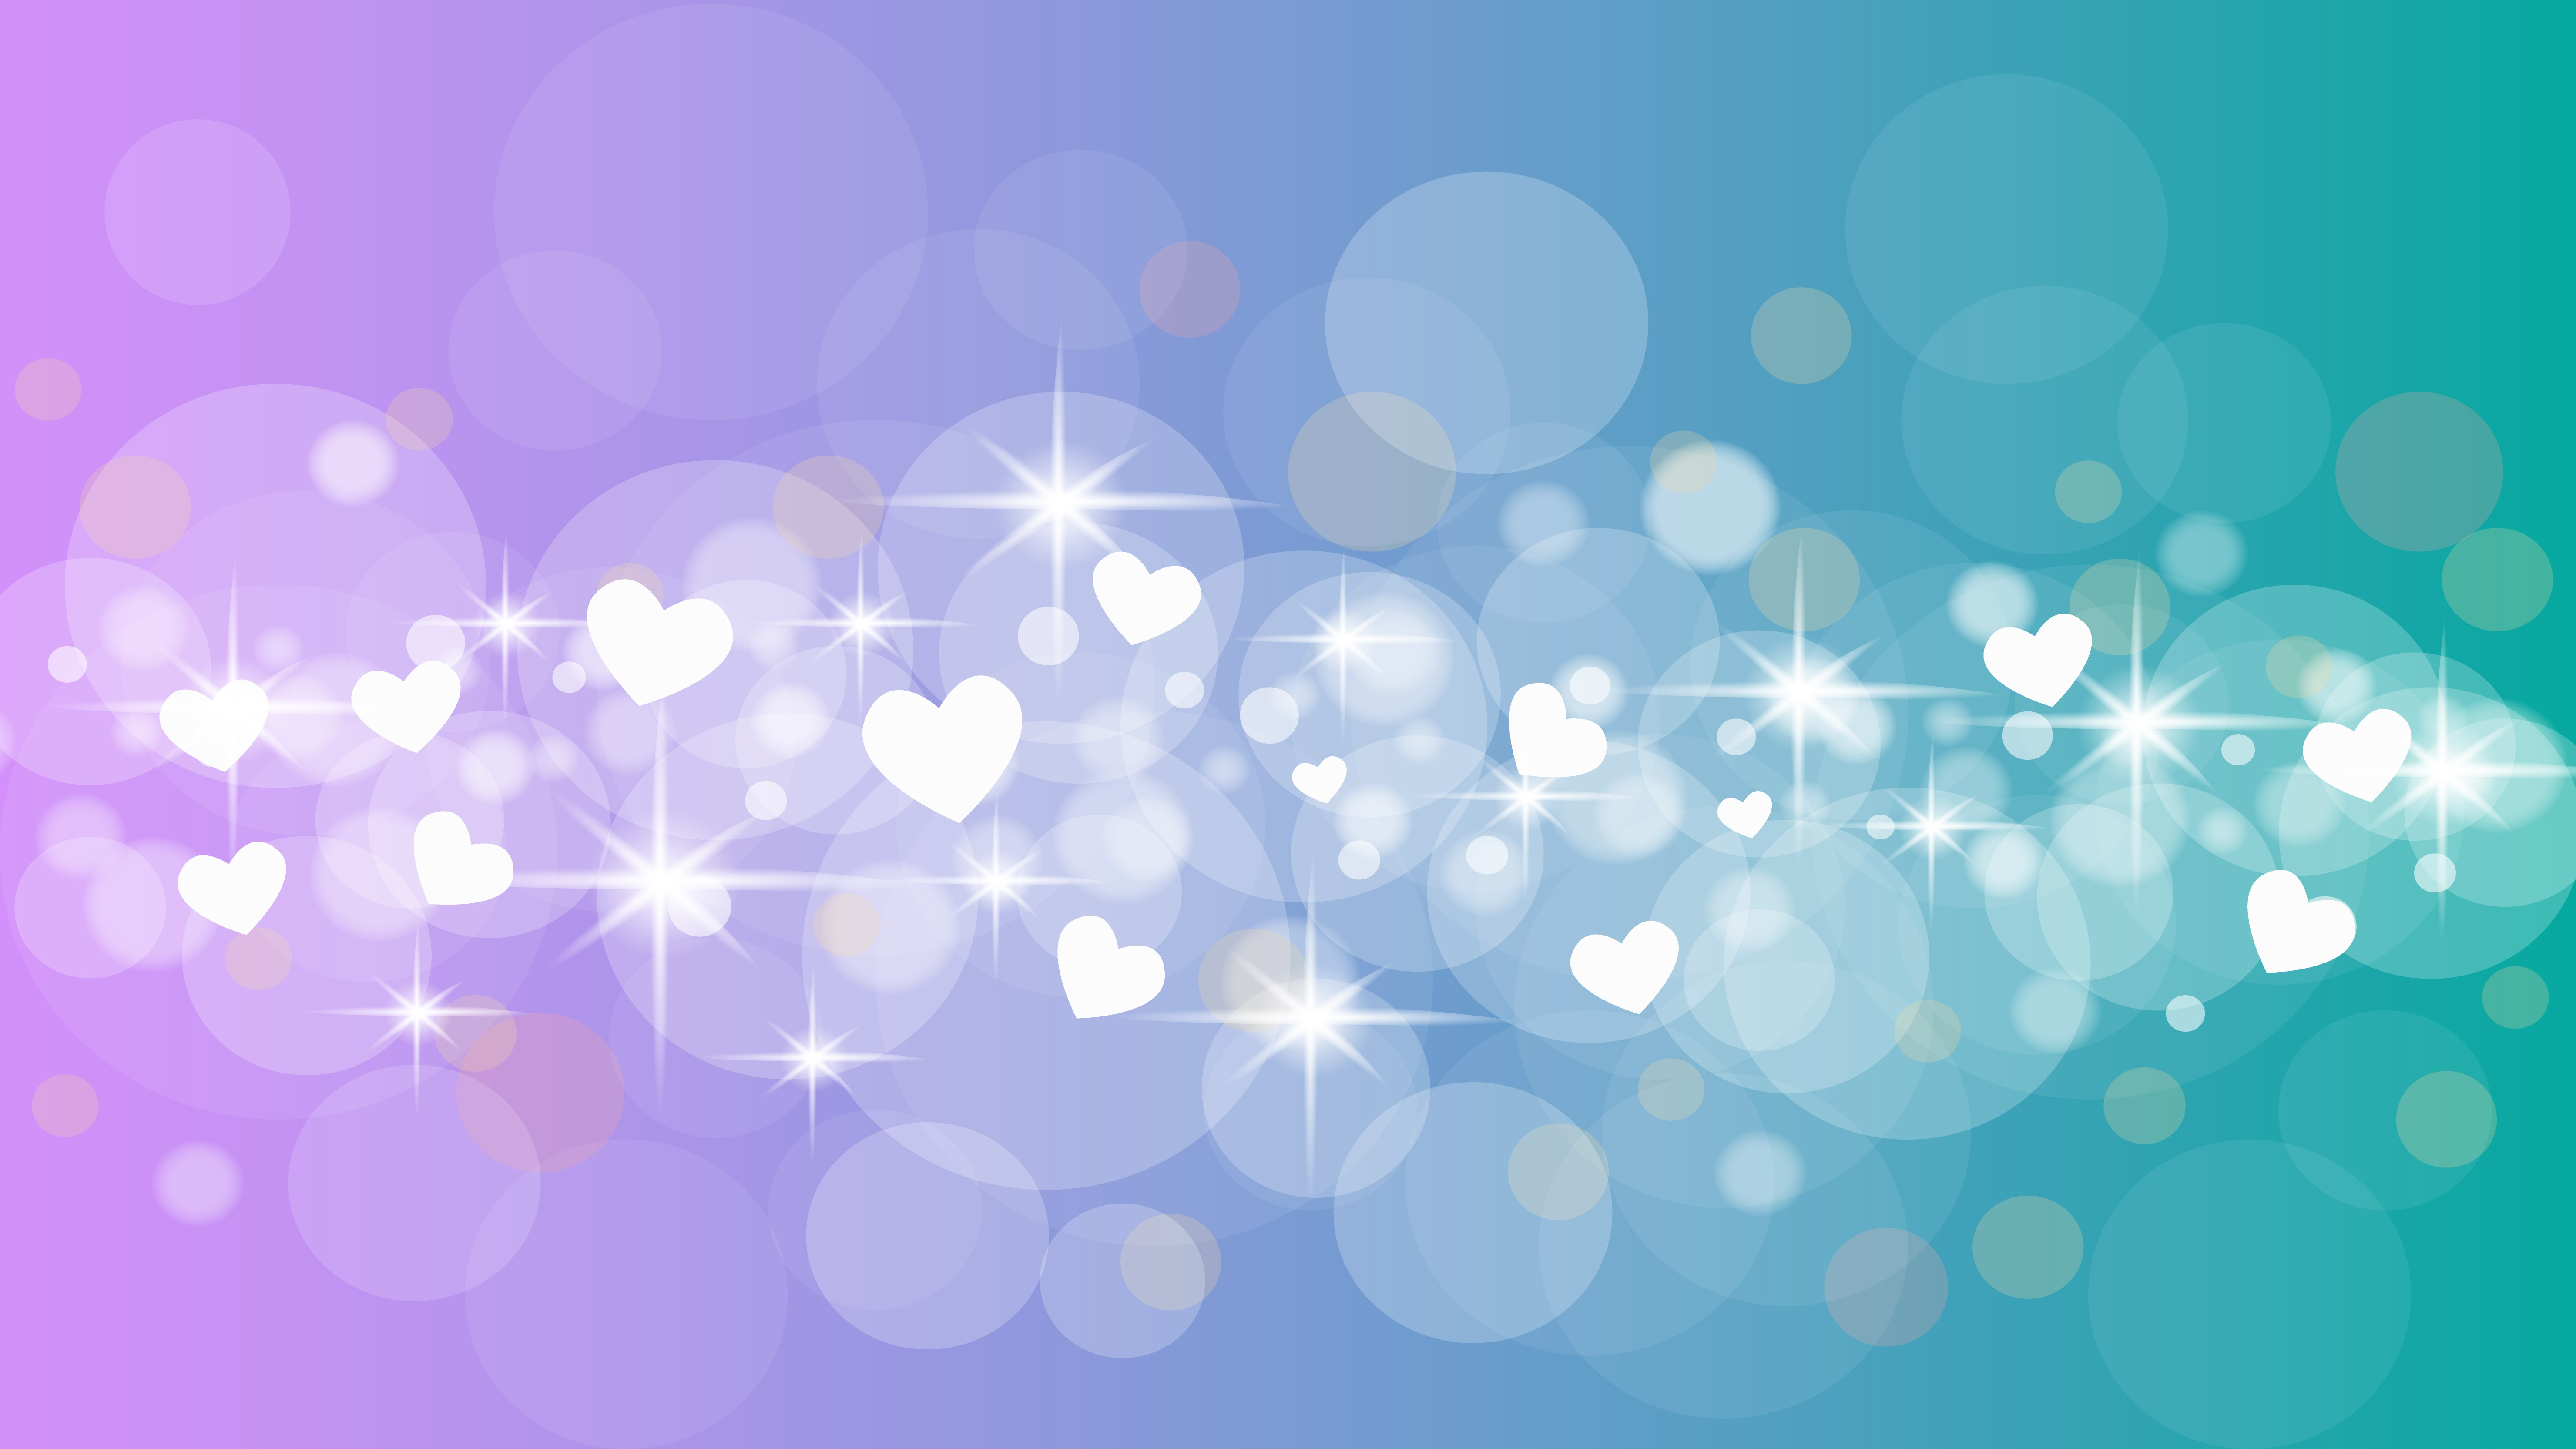 130868 download wallpaper Abstract, Hearts, Circles, Shine, Brilliance, Gradient screensavers and pictures for free